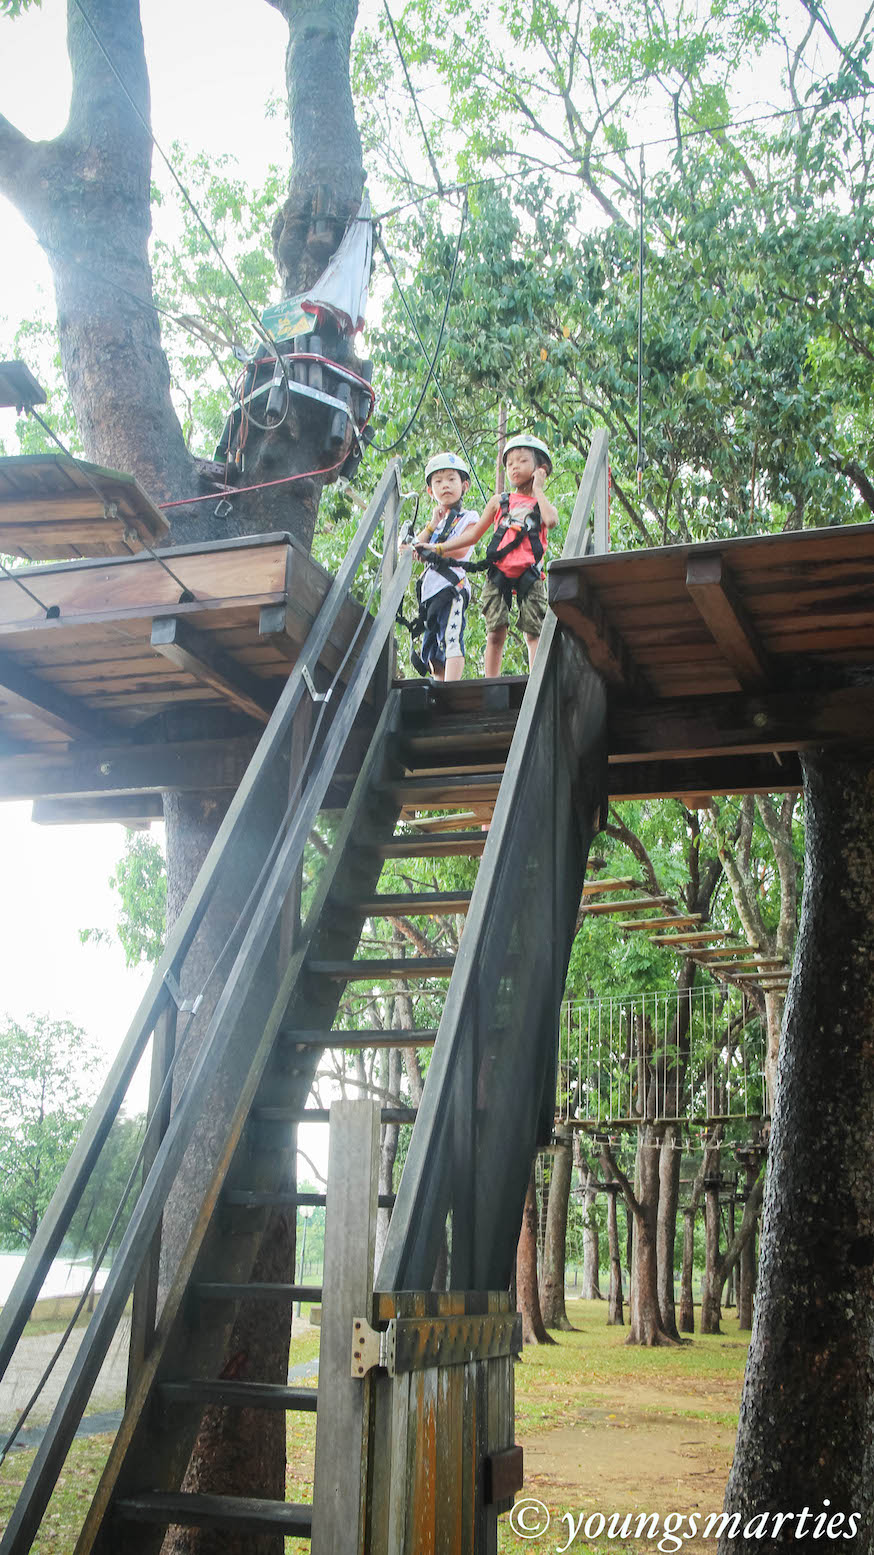 Our little adventure at Forest Adventure!